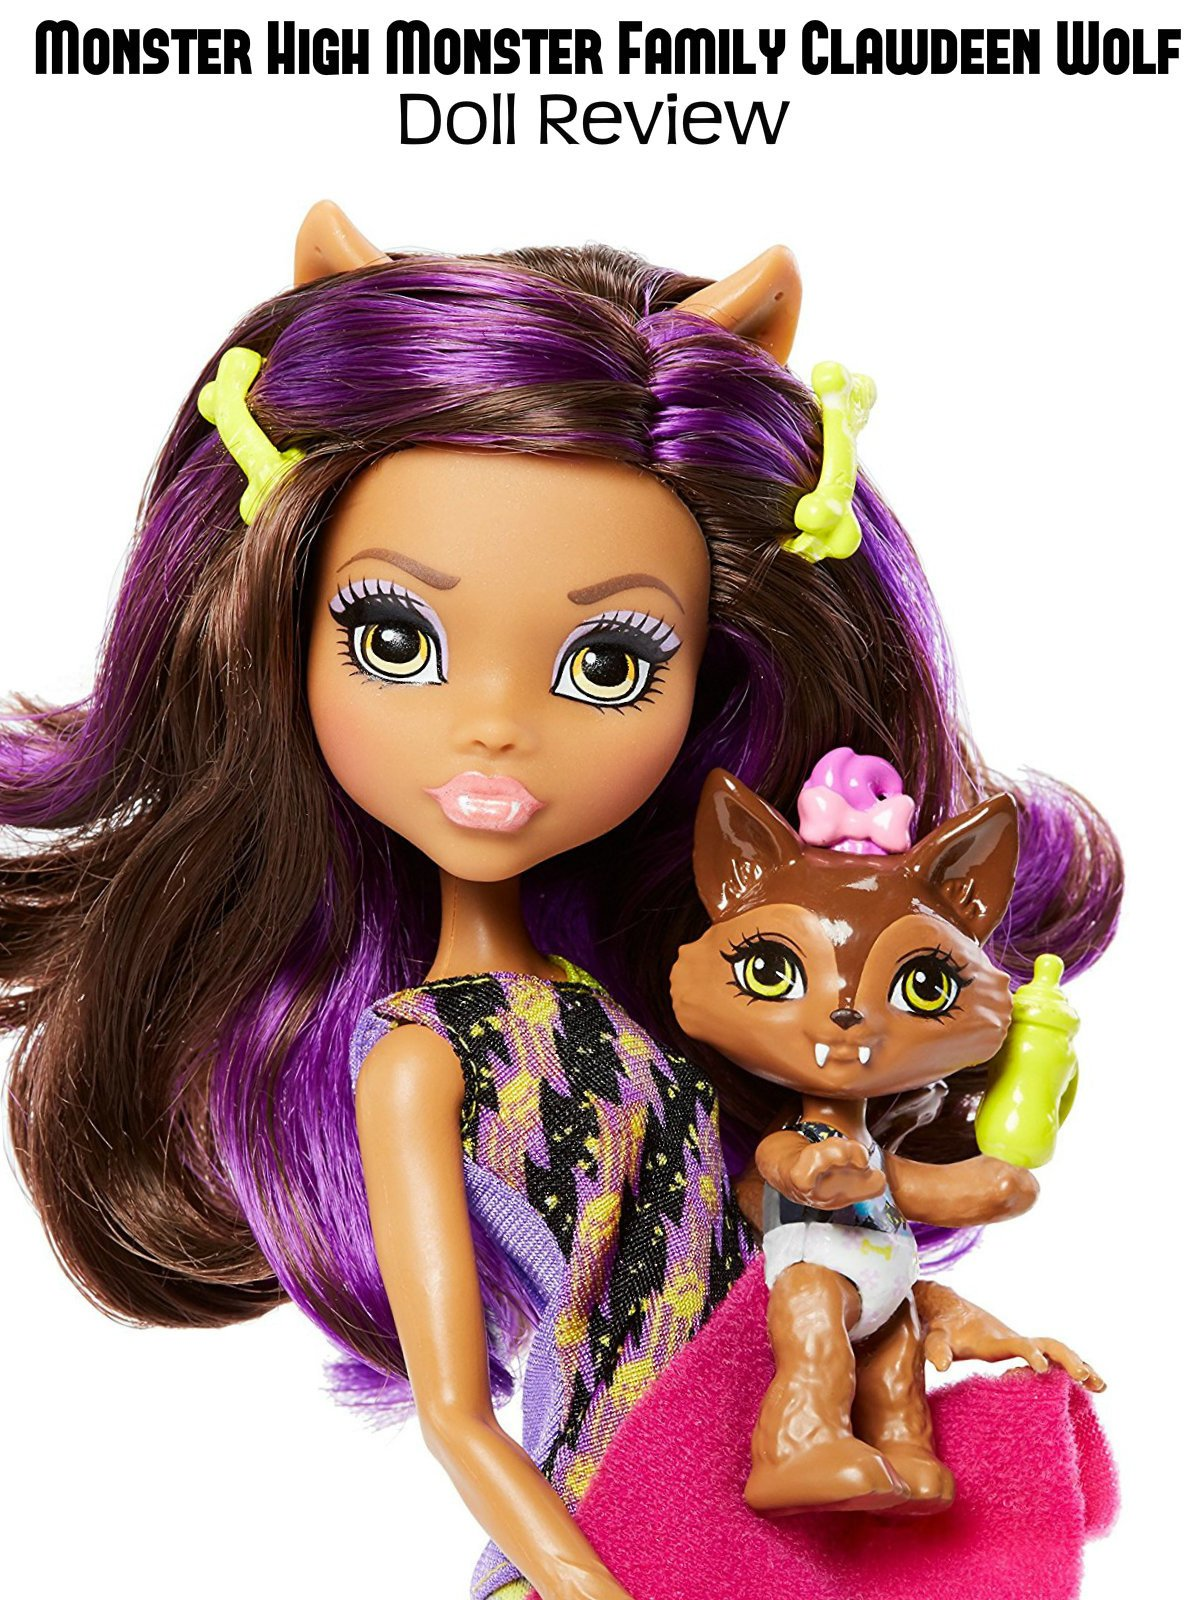 Review: Monster High Monster Family Clawdeen Wolf Doll Review